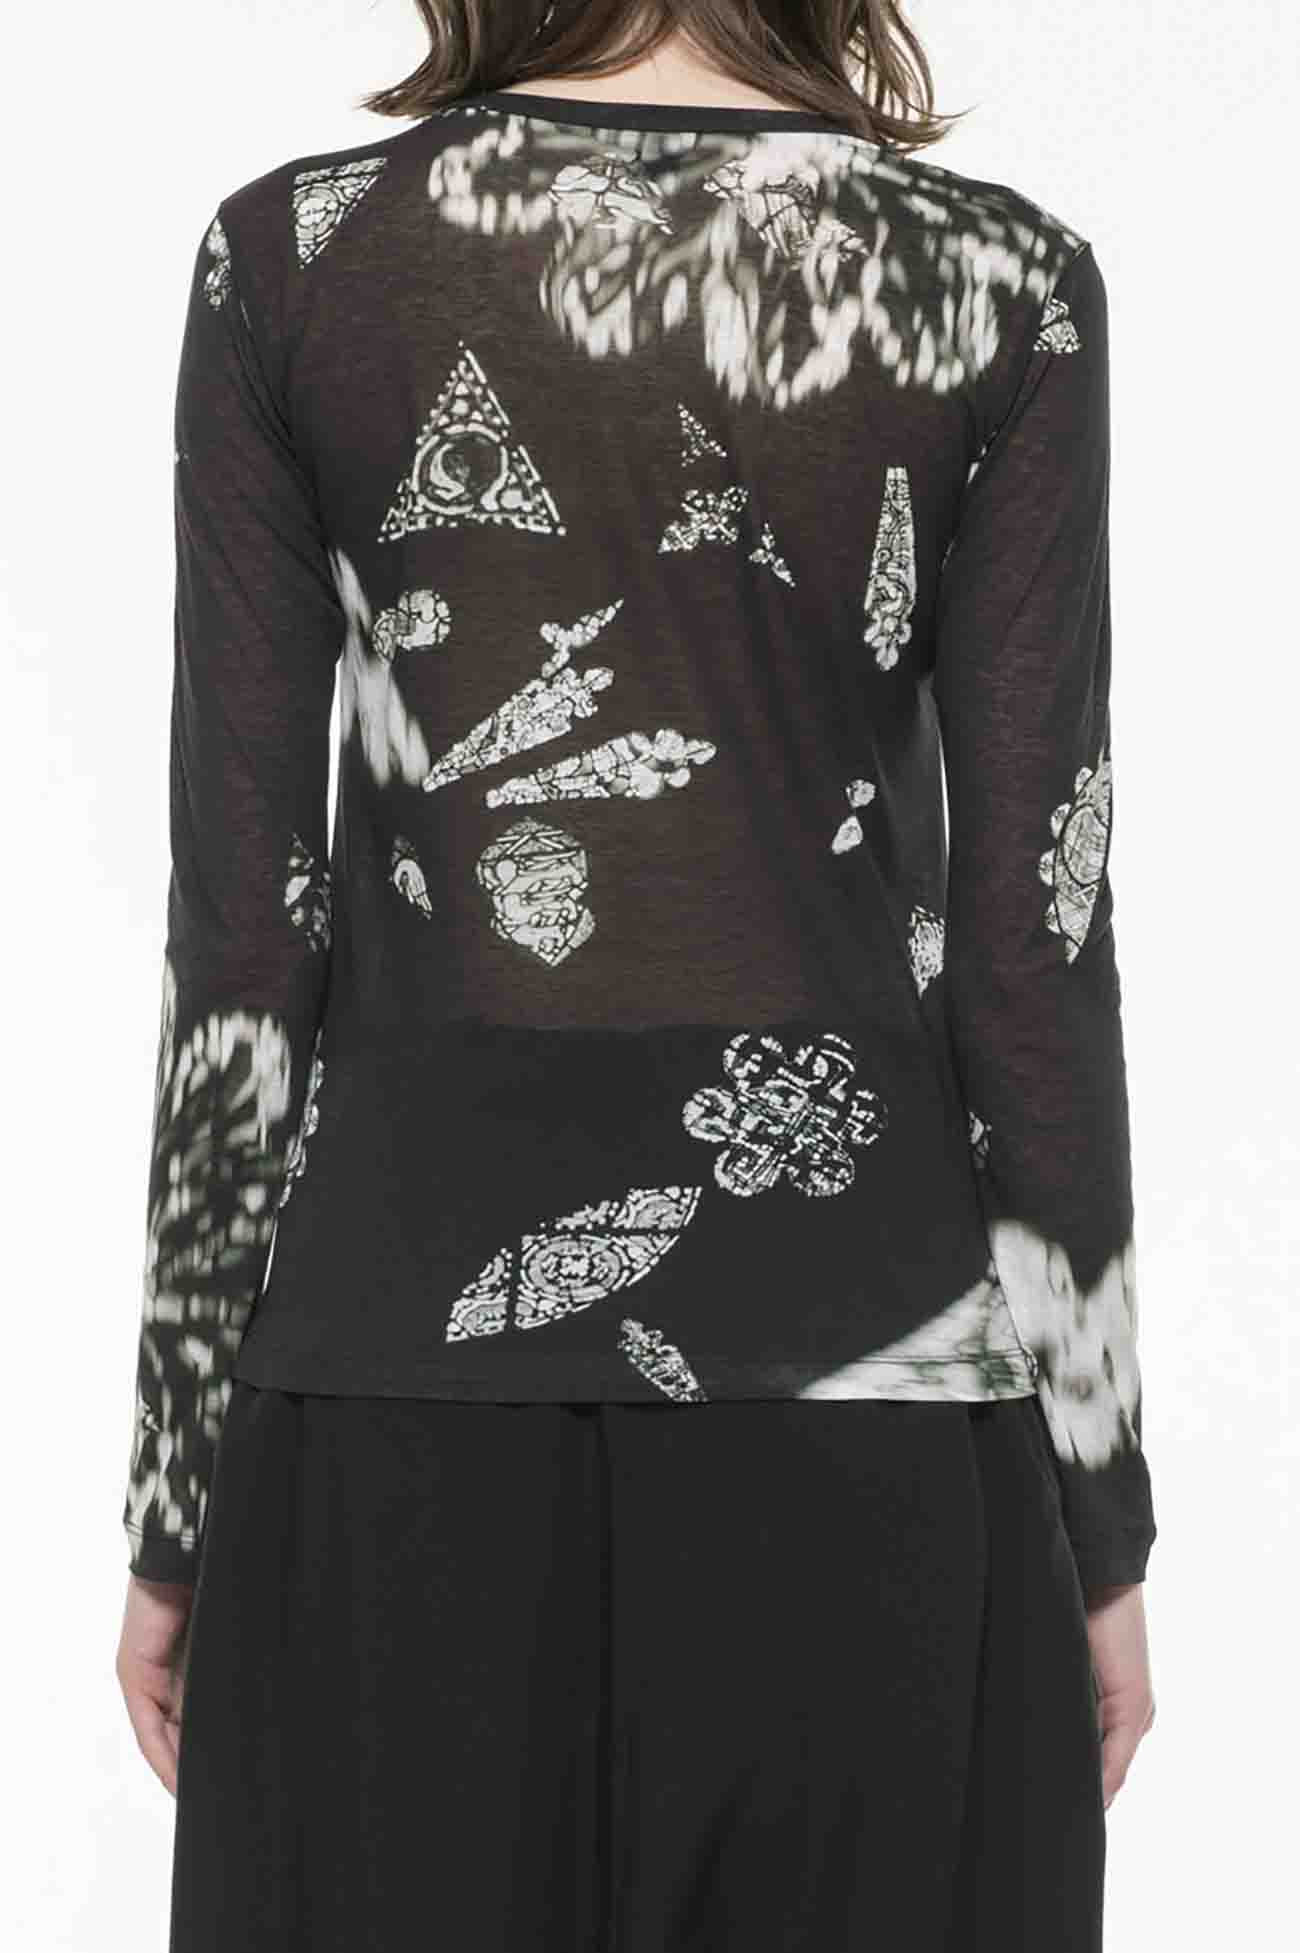 60/- PS DISTORTED STAINED G P ROUND NECK LONG SLEEVE